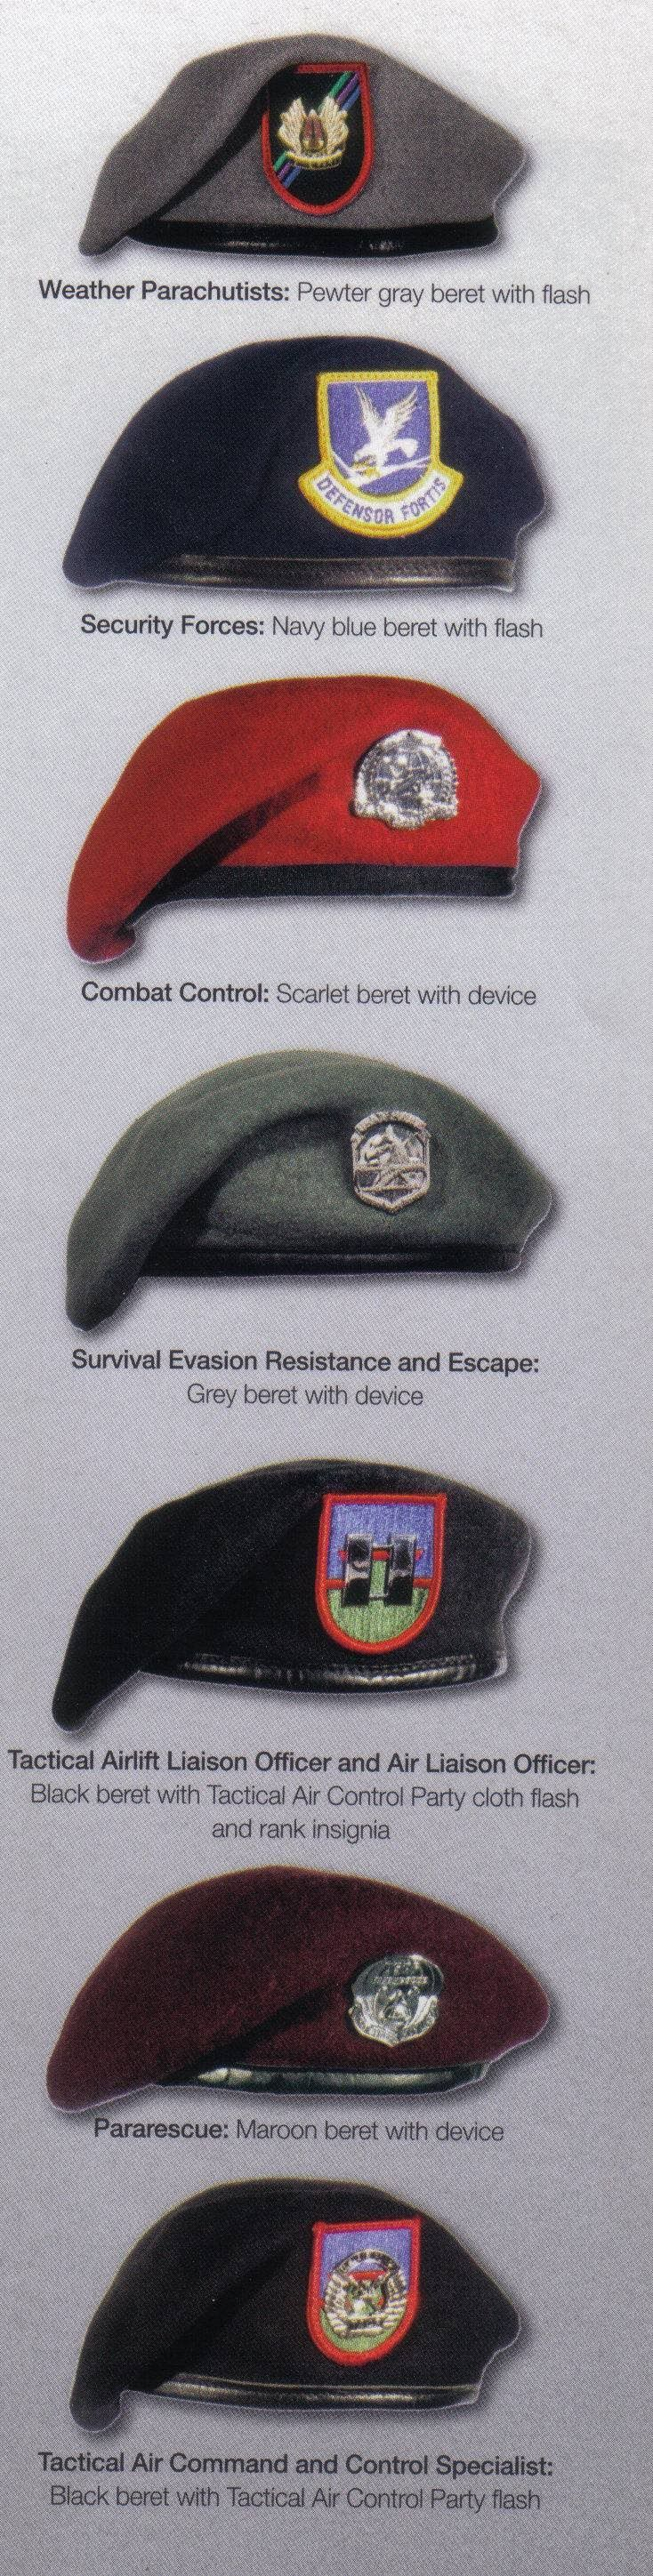 Decoding Those United States Air Force Berets: CCT/STO – Scarlet PJ/CRO – Maroon TACP/ALO – Black Weather Parachutists – Grey Security Force – Blue SERE Specialists – Sage Green Not shown is a Sky Blue beret worn by cadets at the US Air Force Academy while BCT introduction to first year cadets.